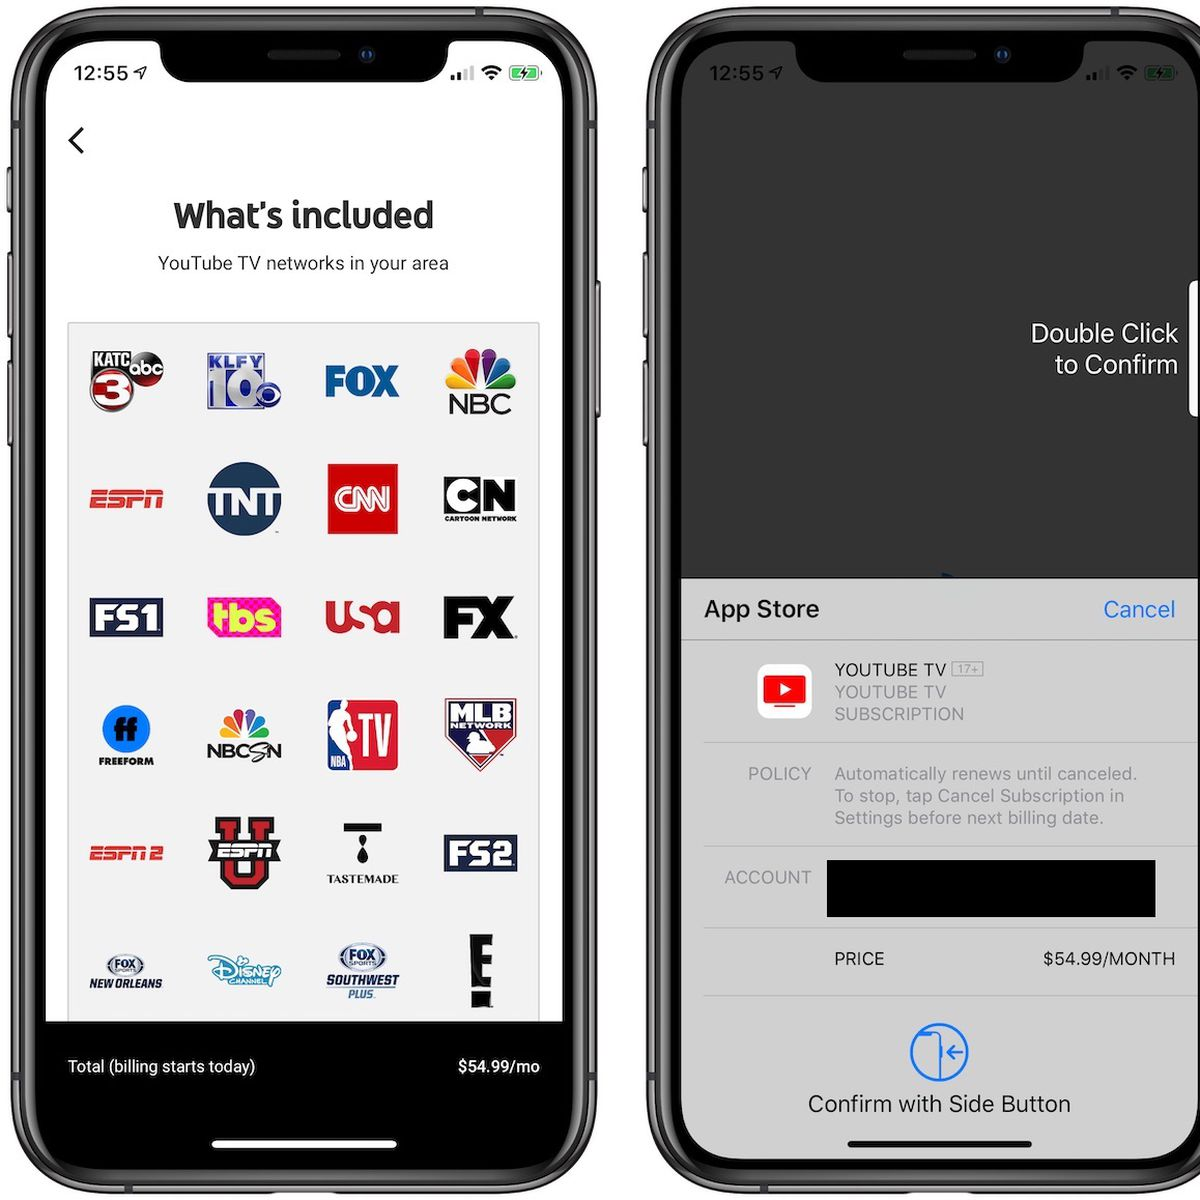 Youtube Tv Increases Price To 49 99 Month 54 99 Month When Billed Through Apple Macrumors